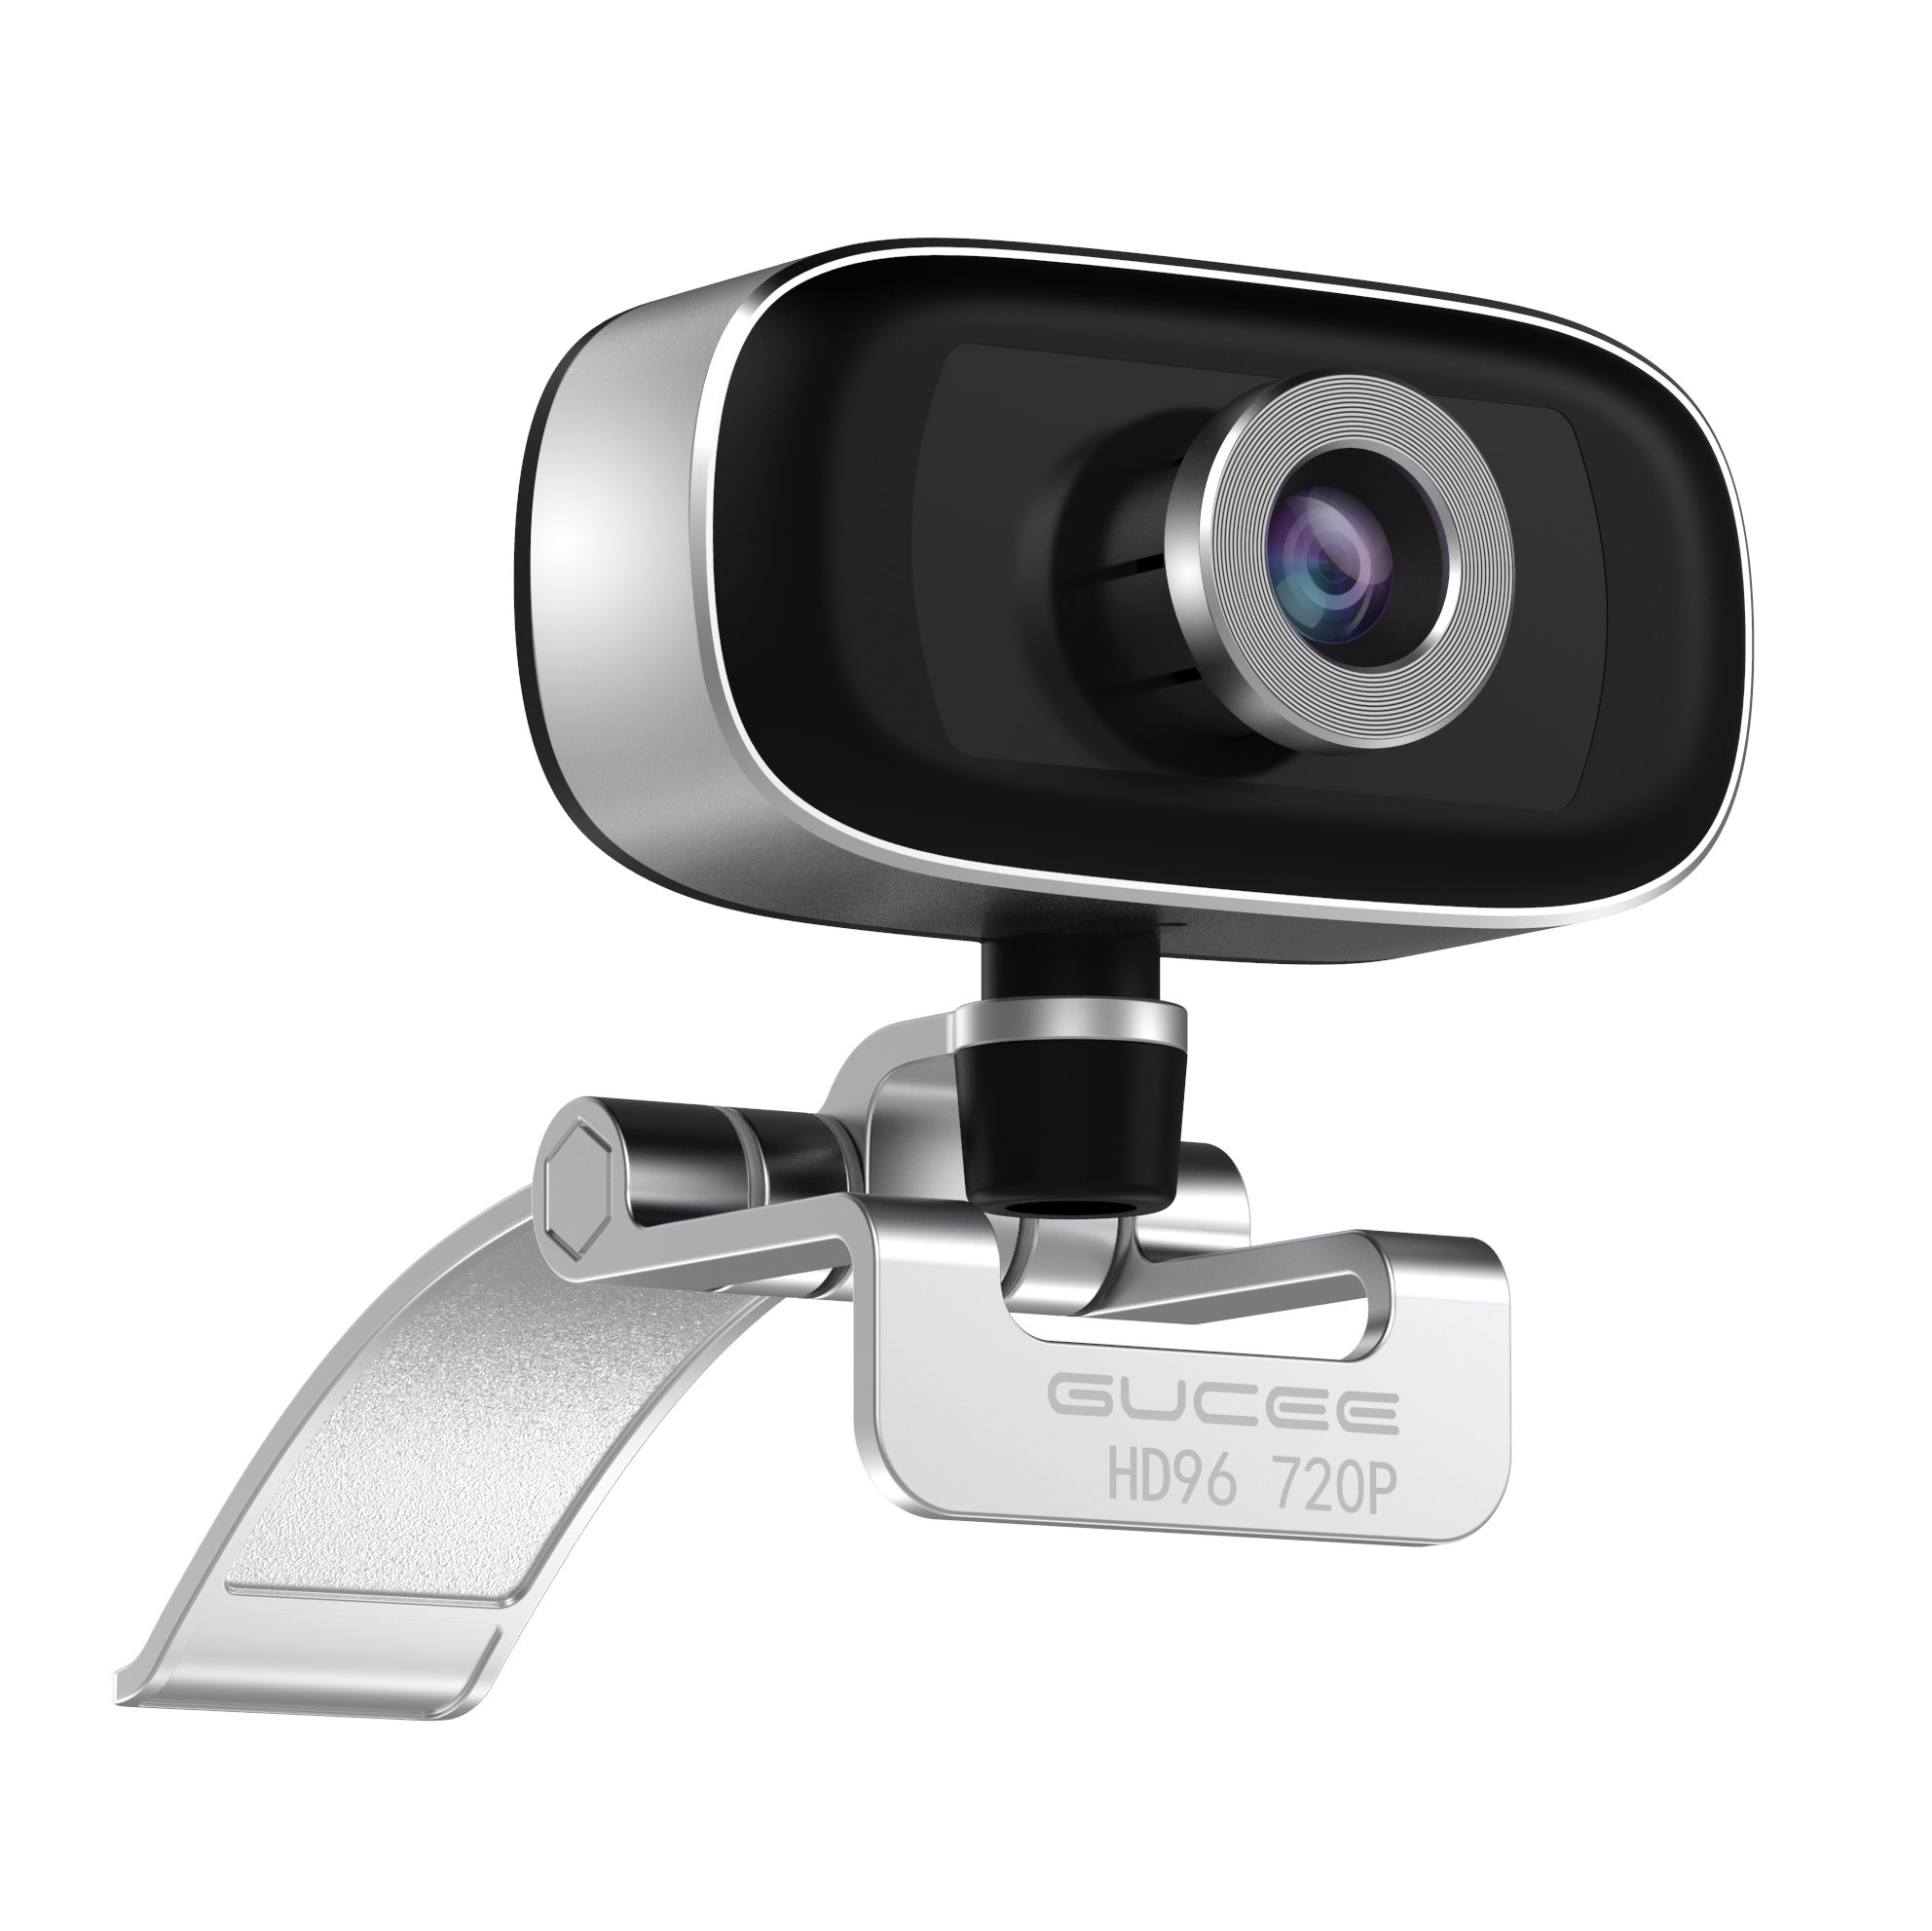 GUCEE HD96 720P HD Webcam with Tripod Ready Base (Tripod Not Included), Web Camera HD Microphone Wide Angle USB Plug and Play, Widescreen Calling Recording for Skype, Win 7 / 8 / 10, Apple Mac OS X by iRush (Image #2)